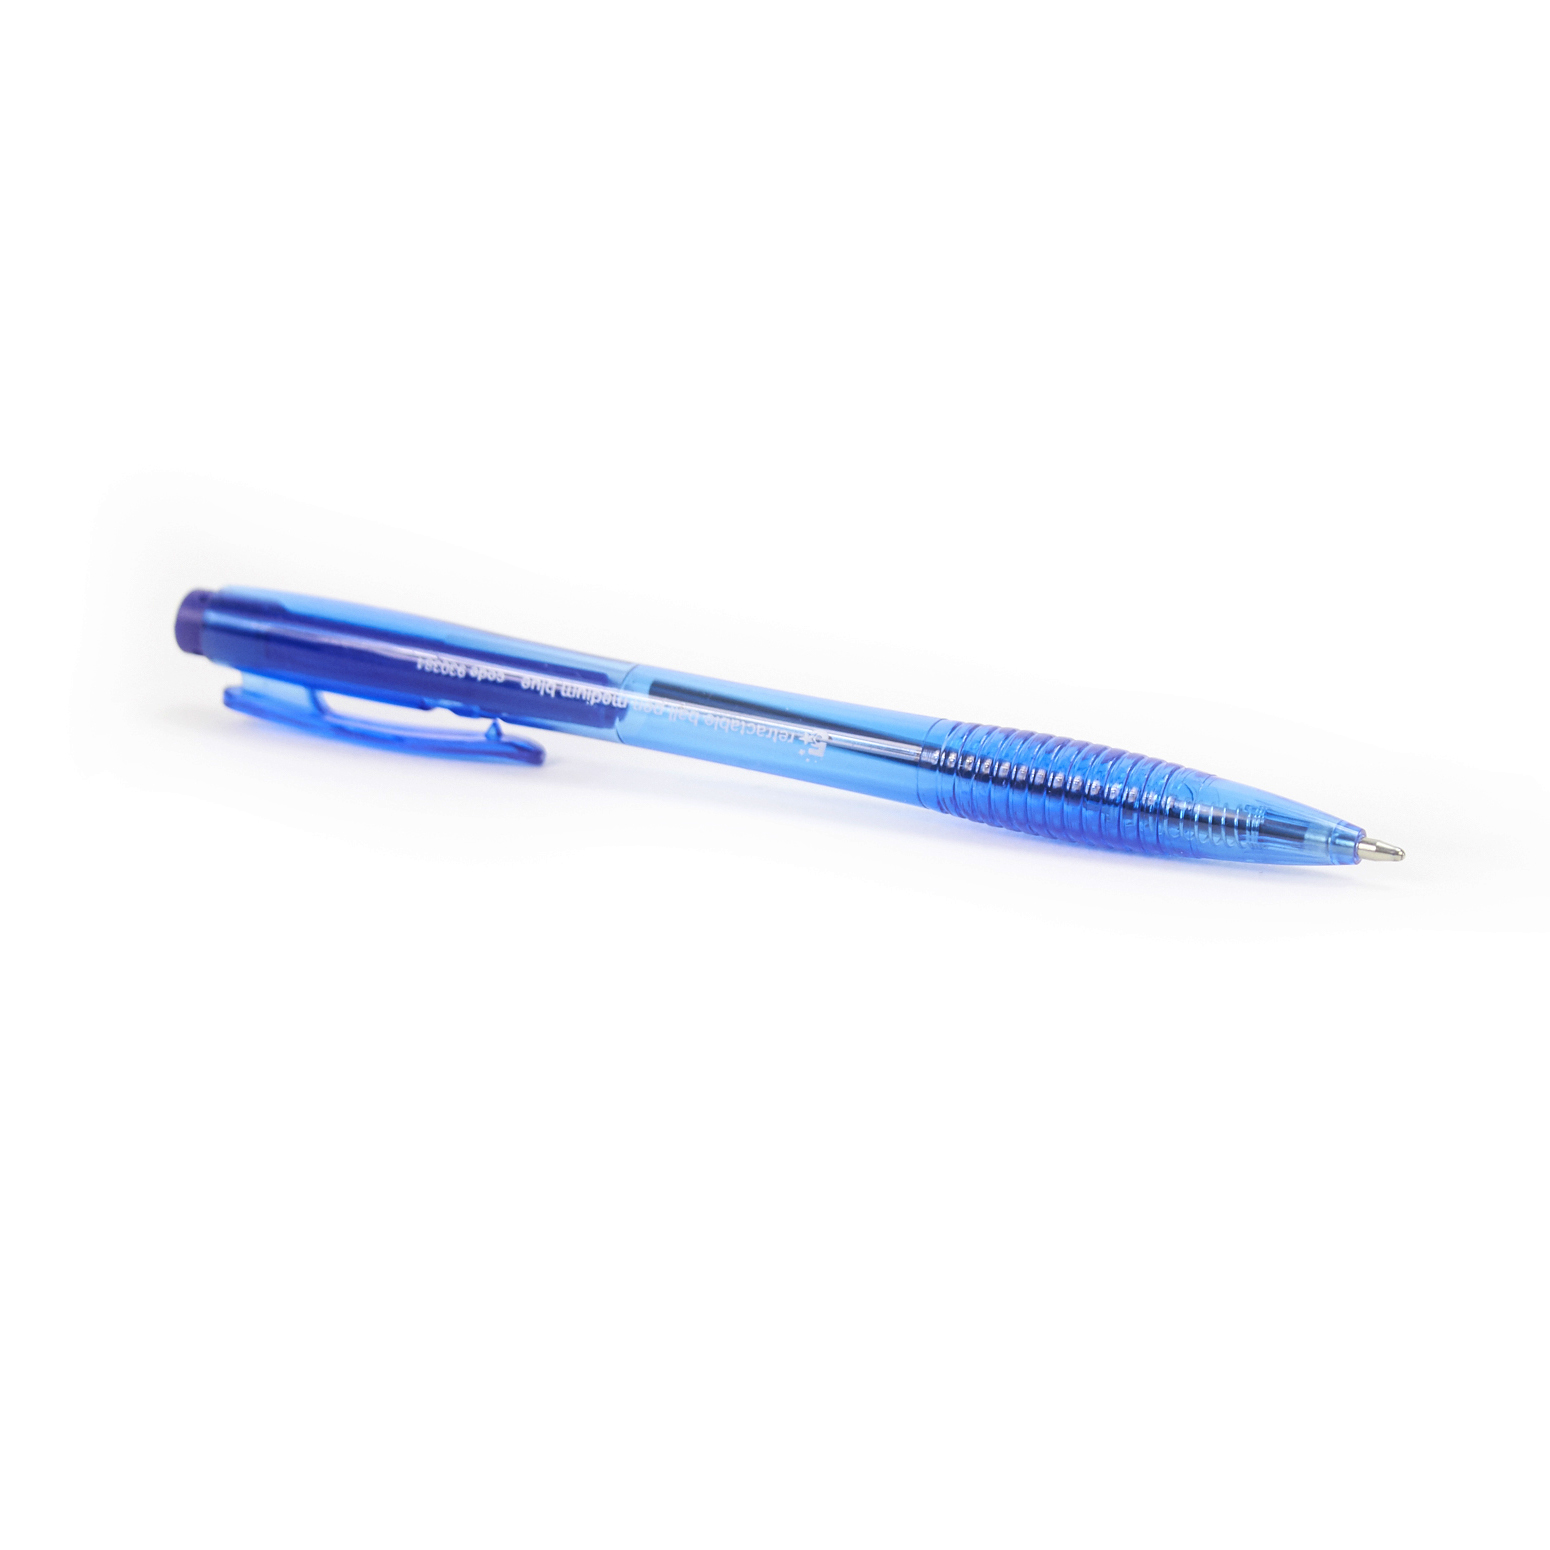 5 Star Office Retractable Ball Pen Medium 1.0mm Tip 0.7mm Line Blue Pack 20